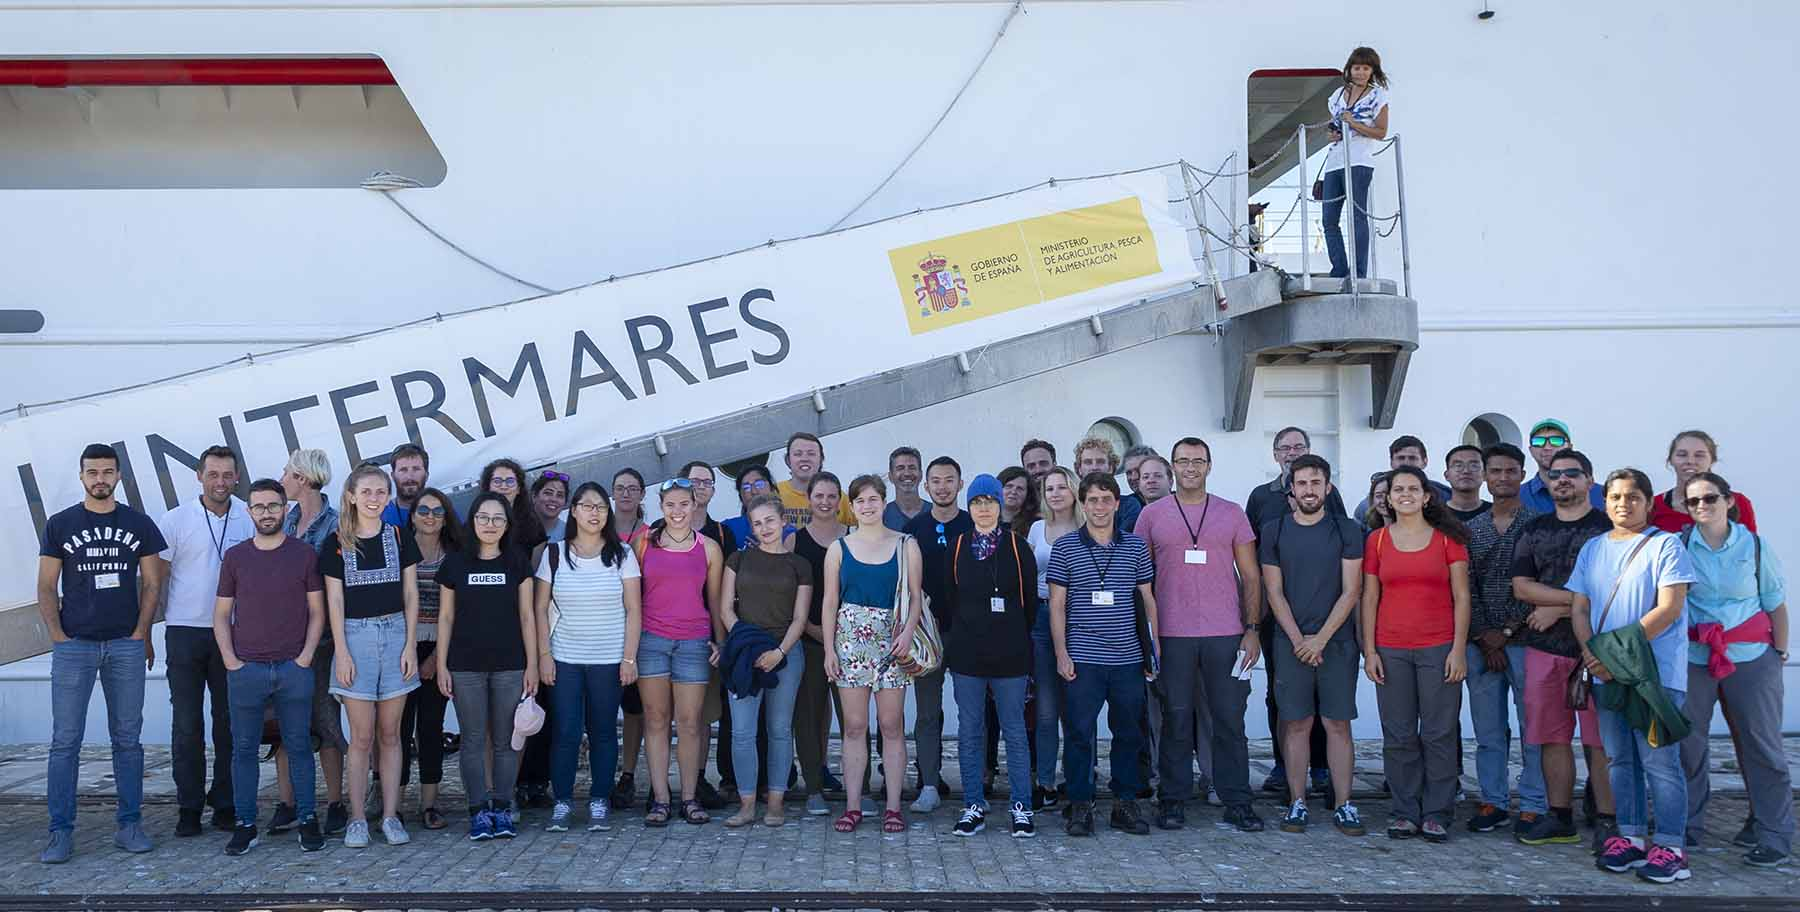 2019 GEOTRACES Summer School participants